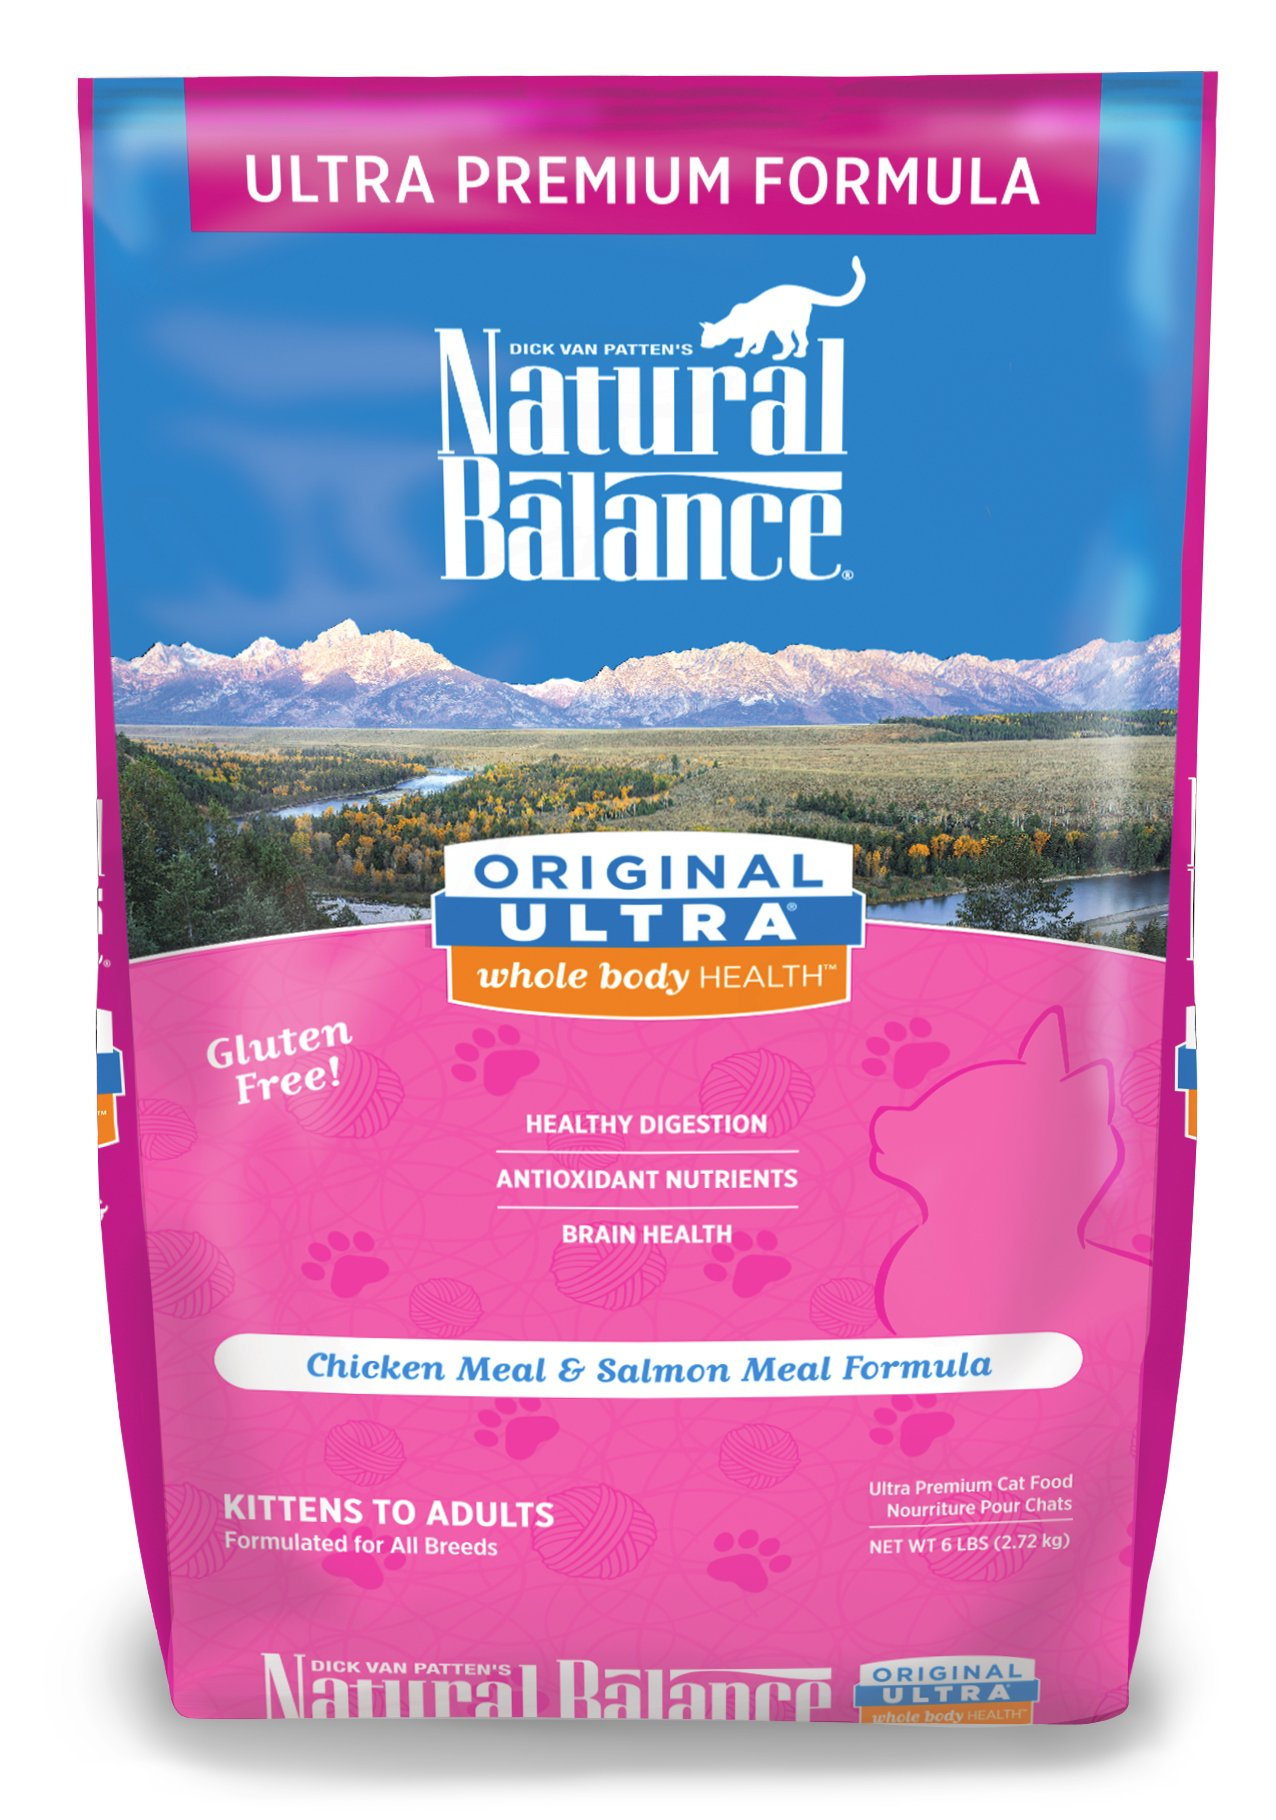 Natural Balance Original Ultra Whole Body Health Chicken Meal & Salmon Meal Formula Dry Cat Food 6lbs